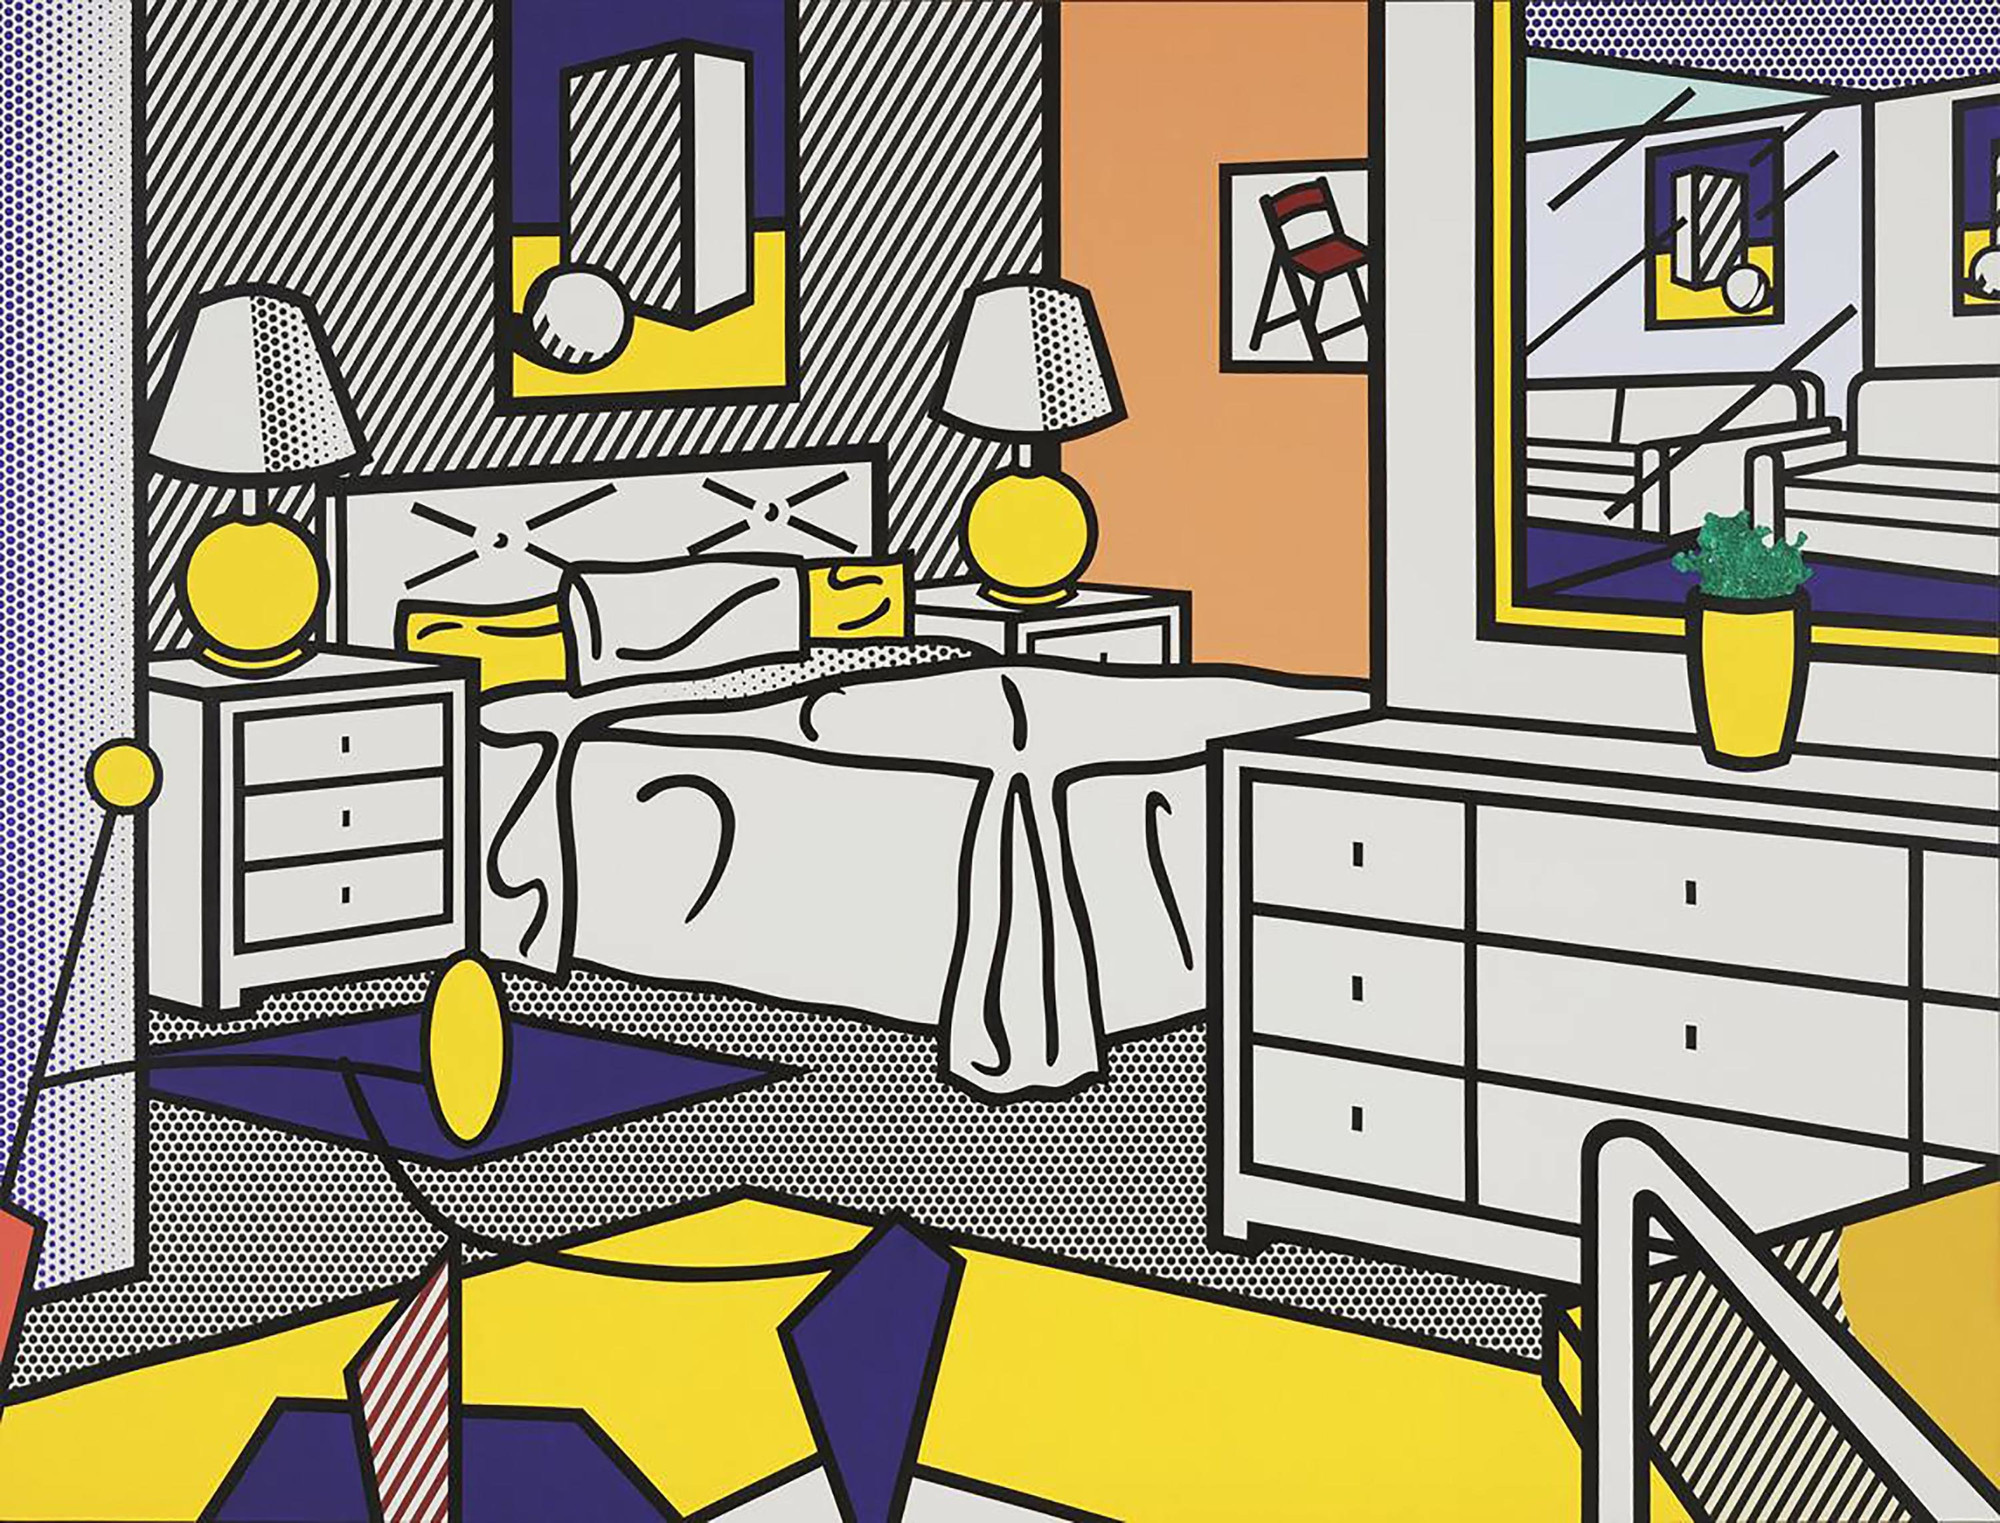 Roy Lichtenstein (American, born Canada. 1913–1980). Interior with Mobile. 1992. Oil and magna on canvas, 10′ 10″ x 14′ 3″ (330.2 x 434.4 cm). The Museum of Modern Art, NY. Enid A. Haupt Fund; gift of Agnes Gund, Jo Carole and Ronald S. Lauder, Michael and Judy Ovitz in honor of Roy and Dorothy Lichtenstein; and Anna Marie and Robert F. Shapiro. © Estate of Roy Lichtenstein